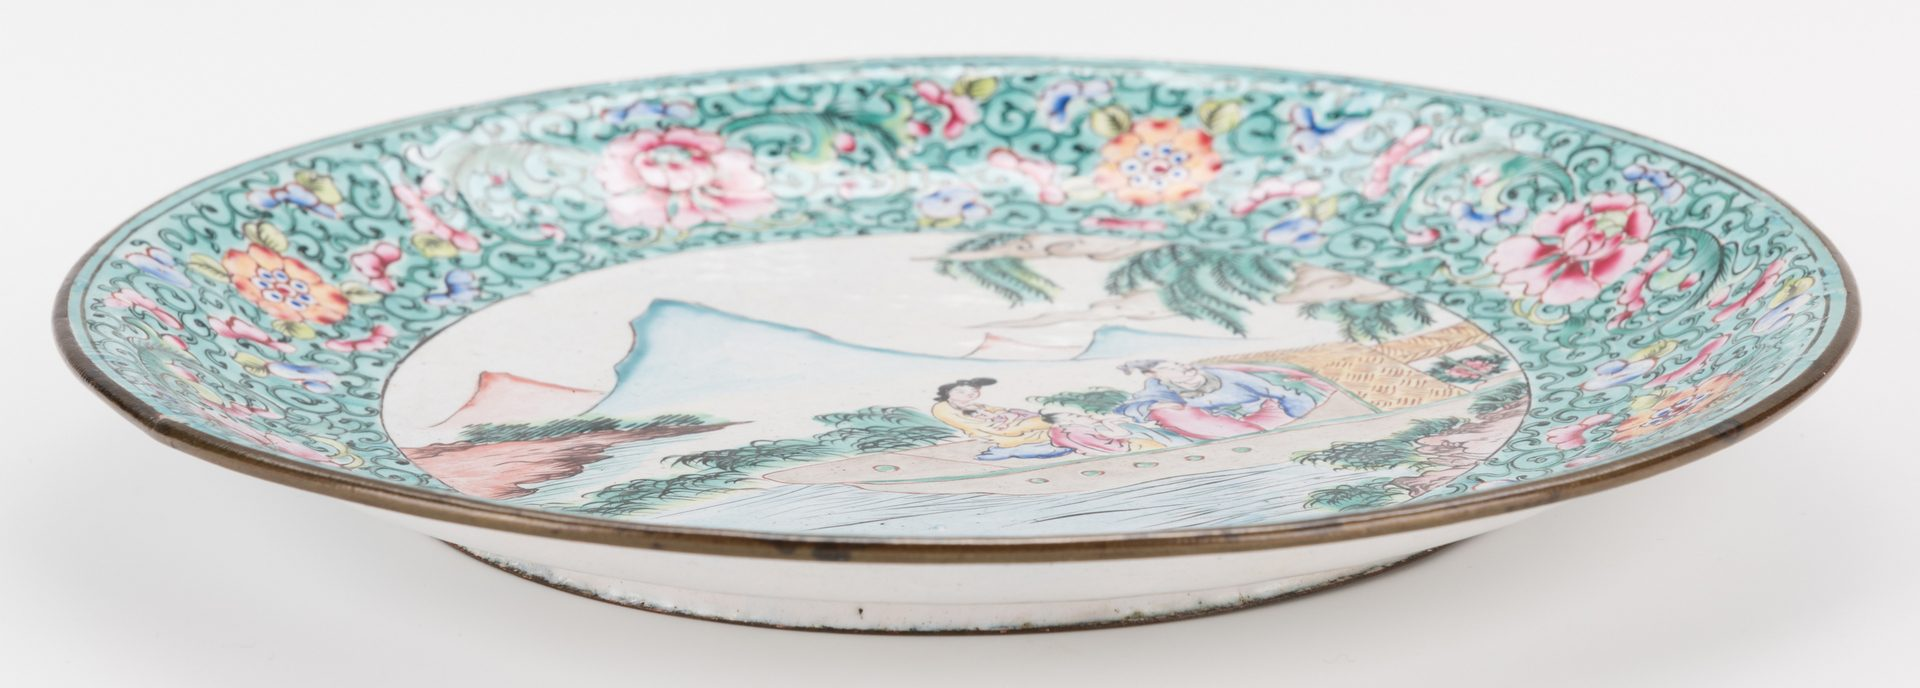 Lot 207: 5 Pcs. Chinese Cloisonne & Enameled Table Items